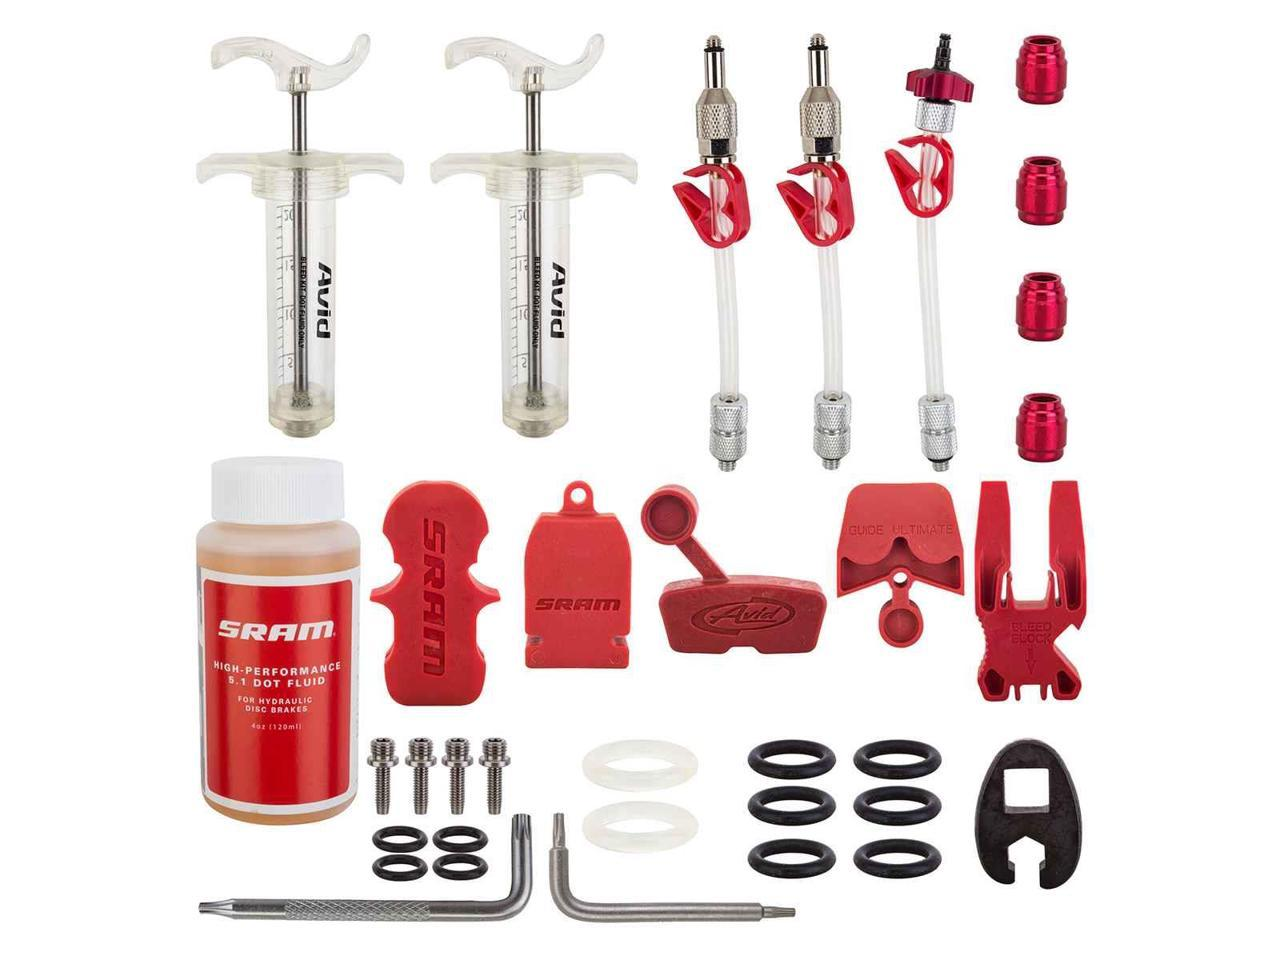 SRAM TOOL BRAKE HYDRO BLEED KIT PRO WITH DOT FLUID